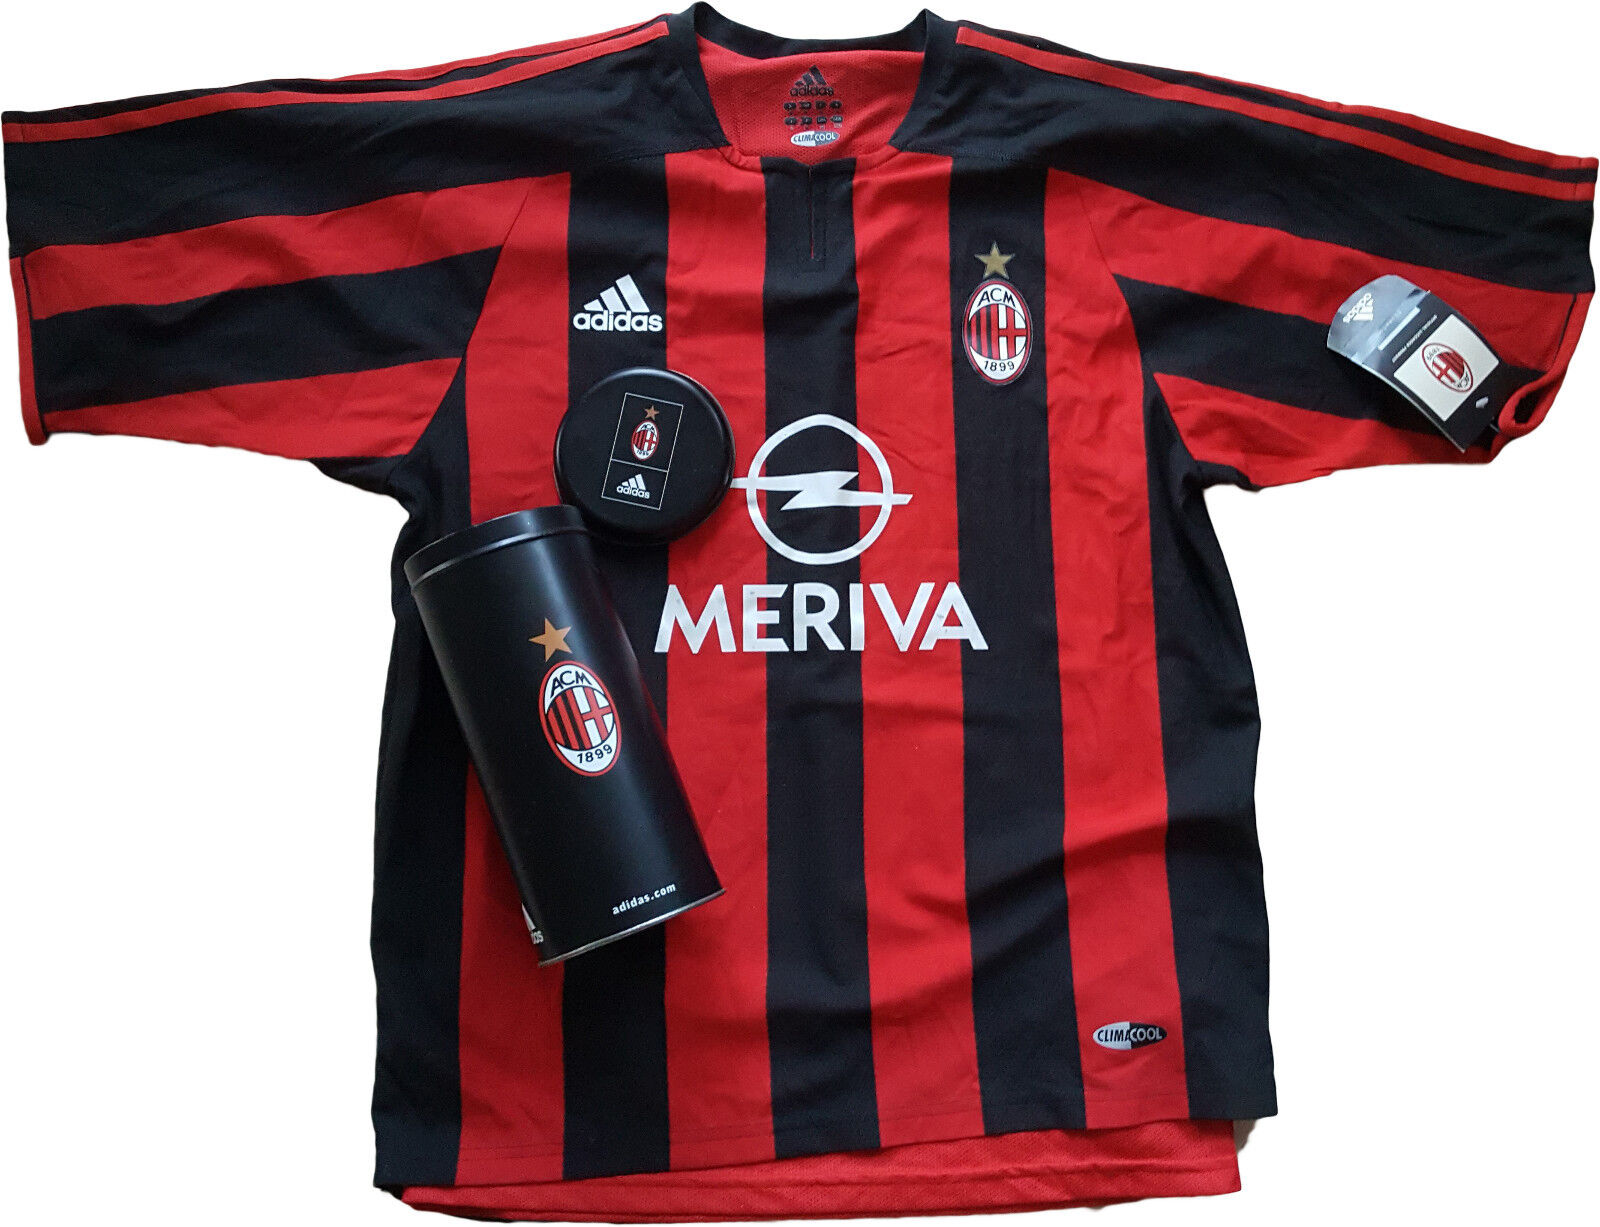 Maglia milan adidas Player issue authentic Meriva 2003 2004 Climacool DUAL LAYER